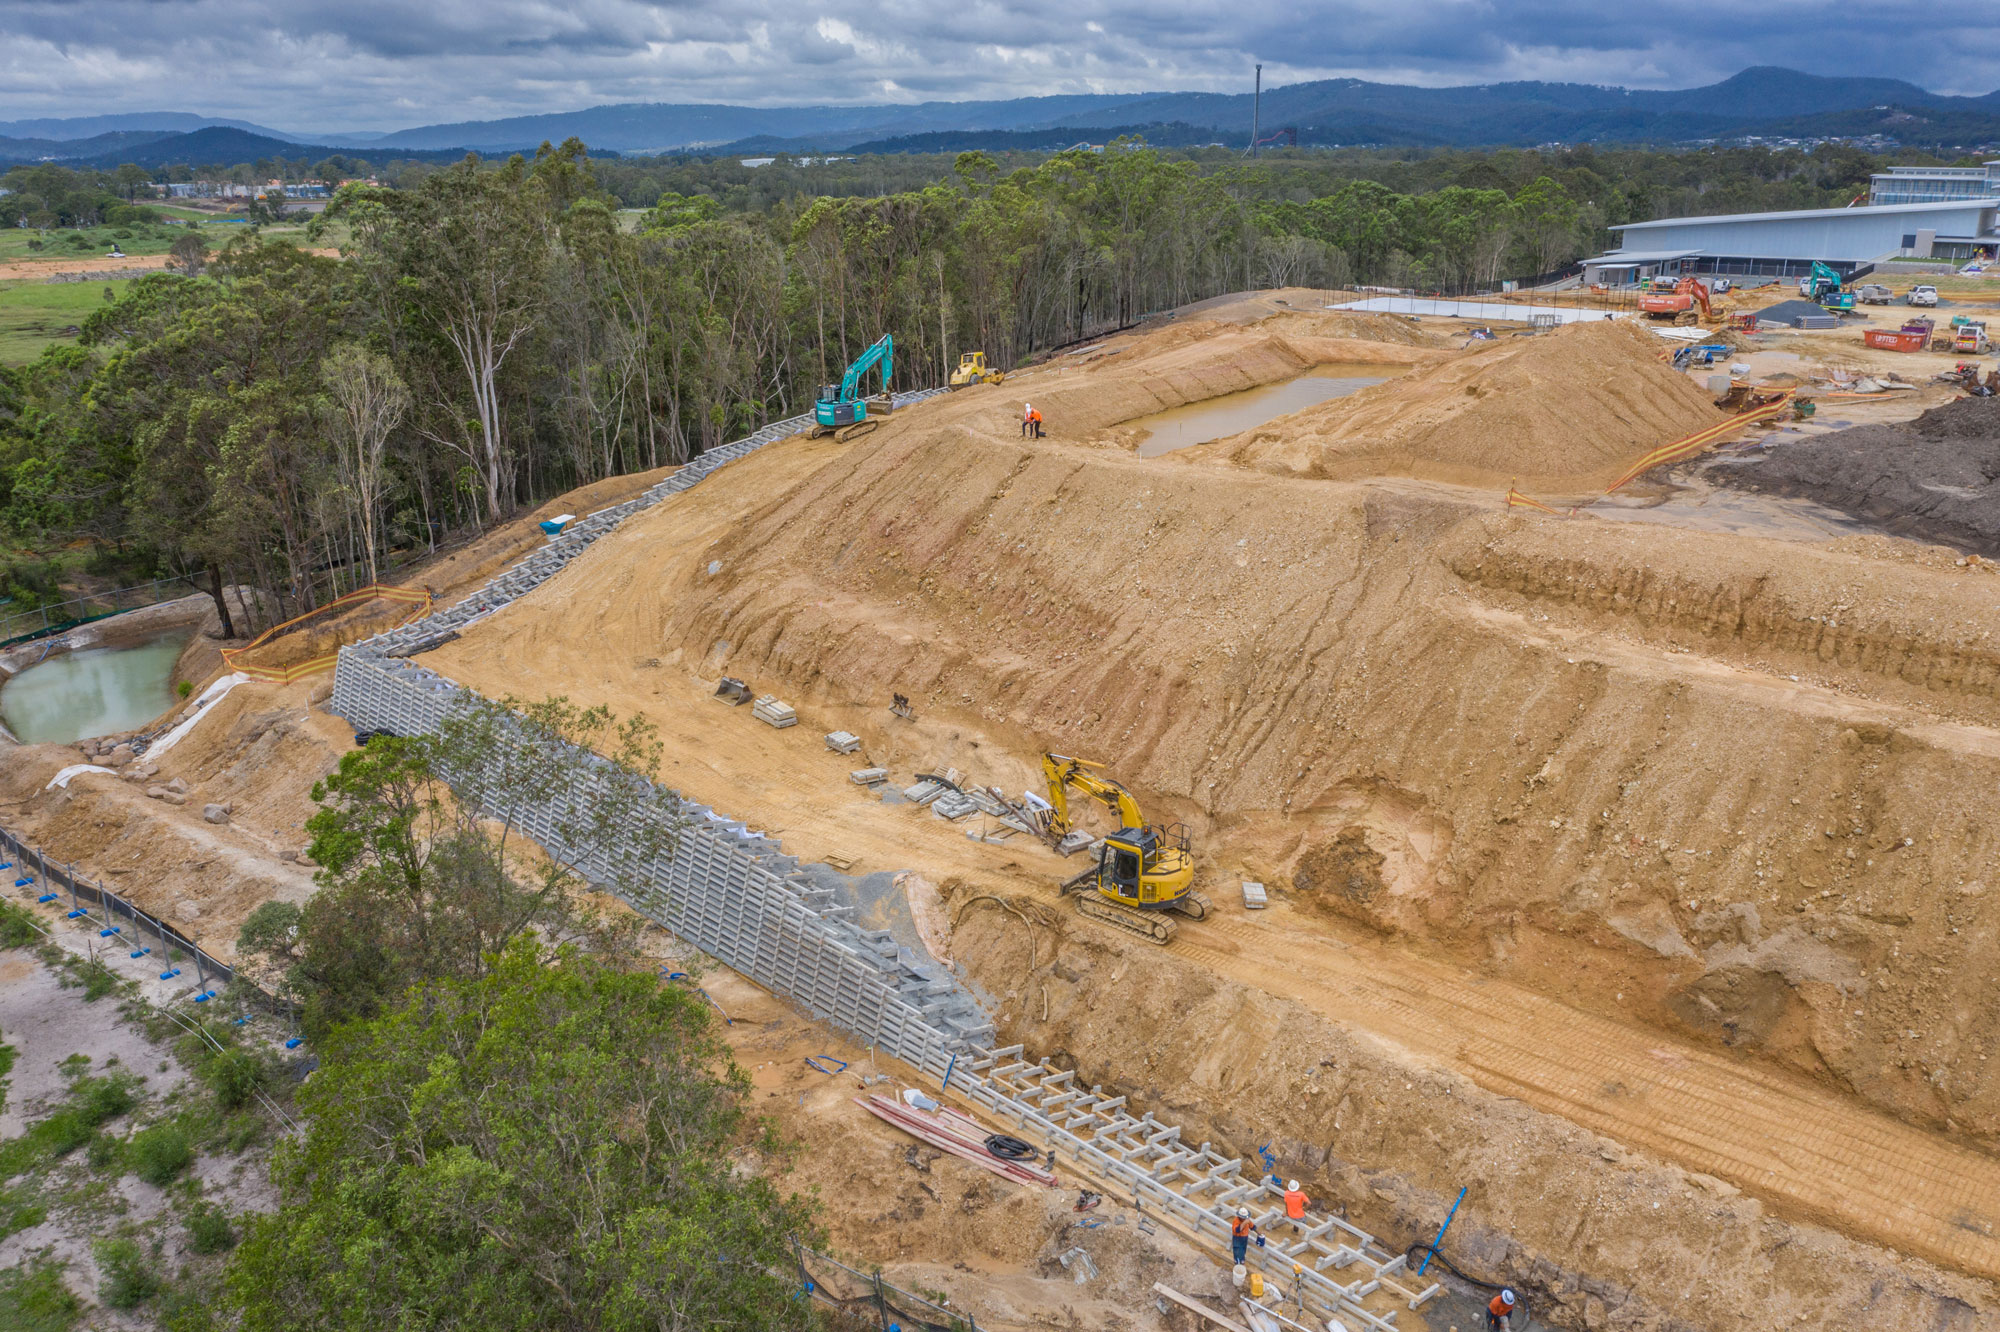 Drone photograph of a sleeper wall under construction at a state school under development at Coomera